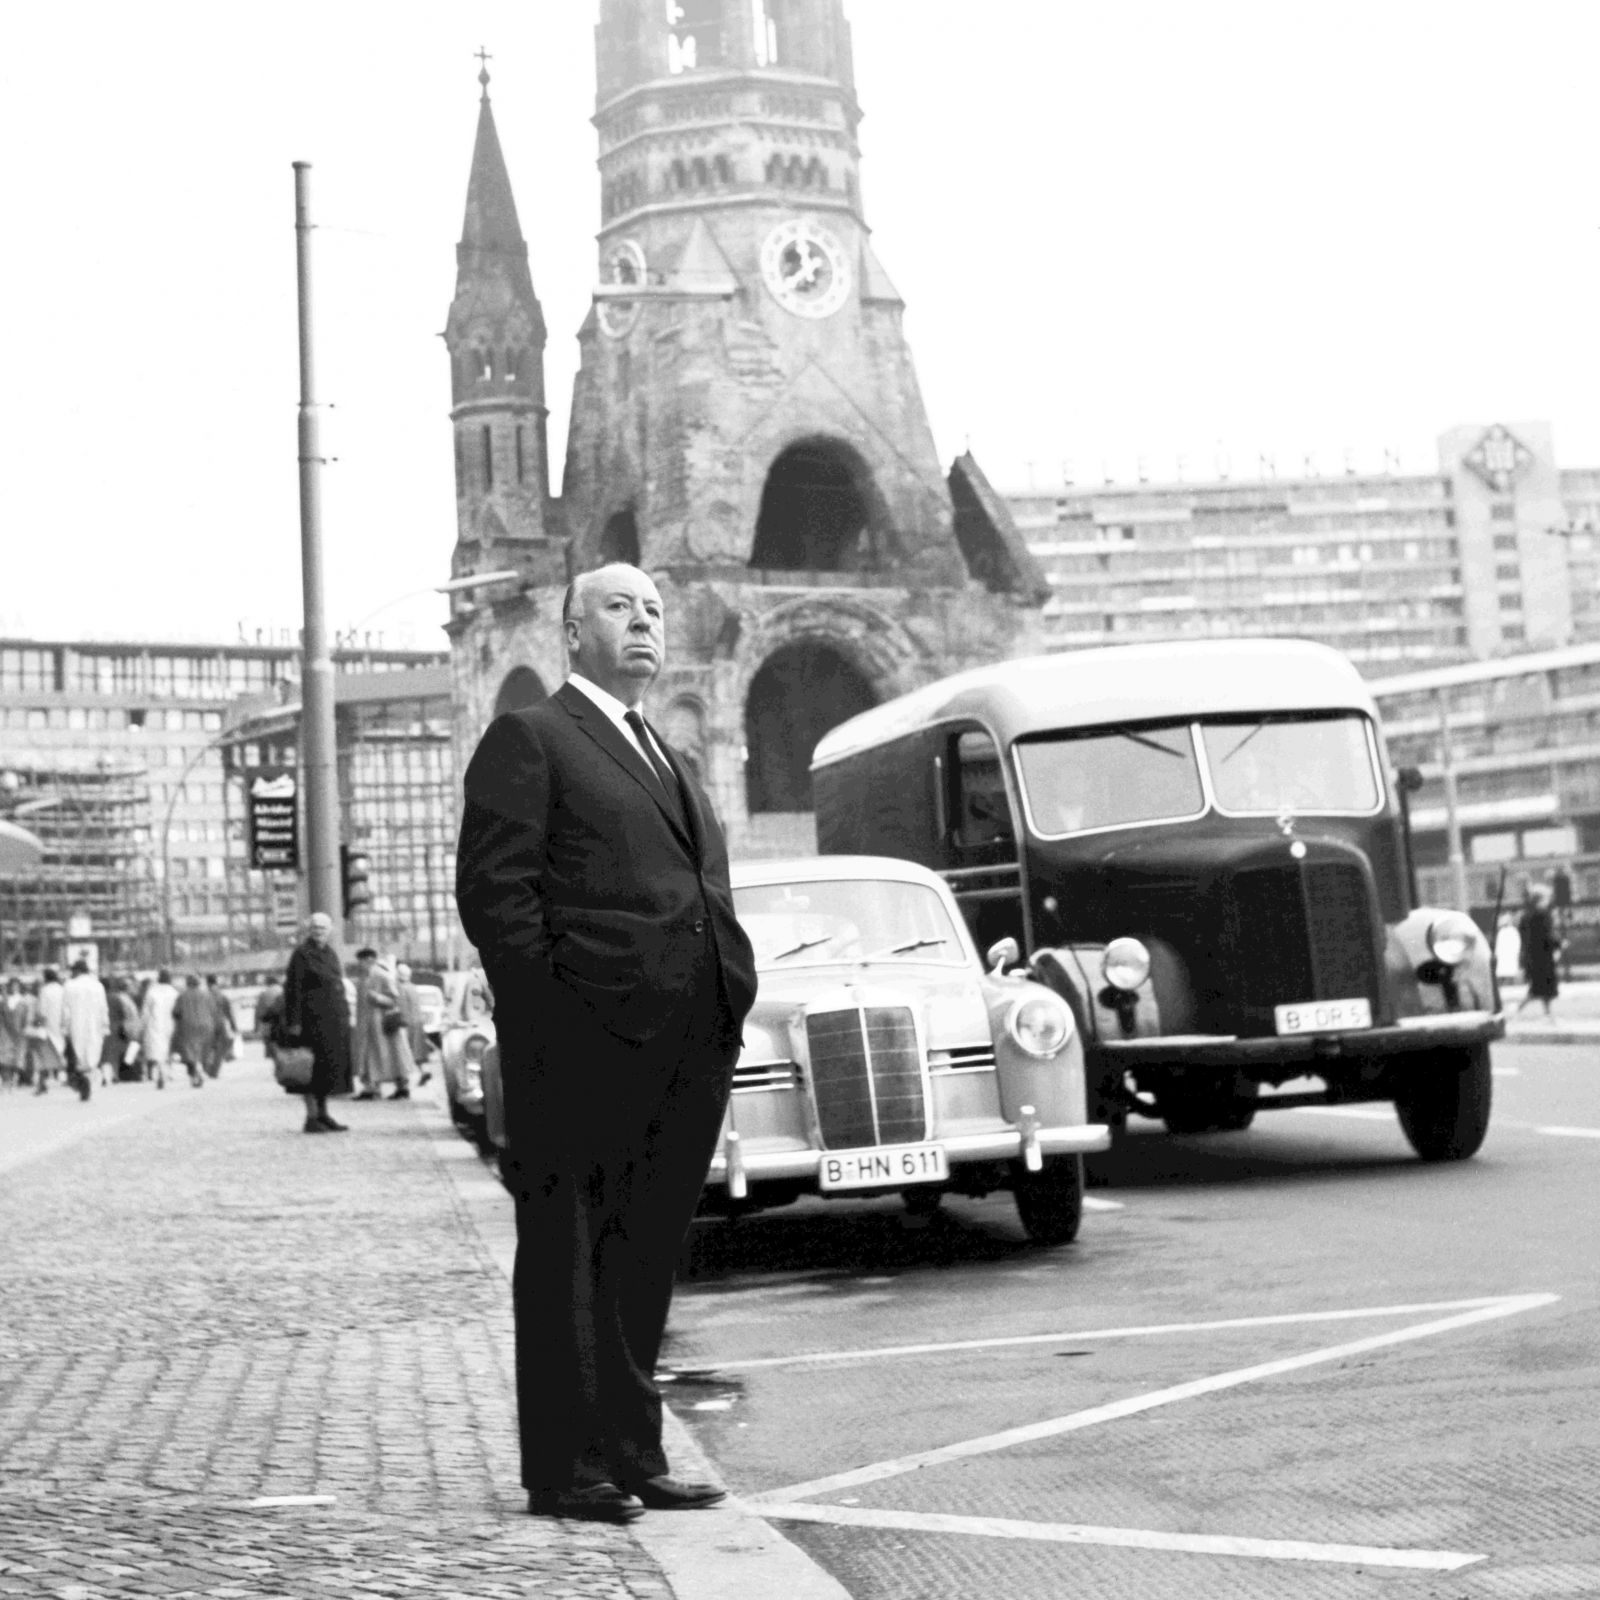 Black and white portrait of Alfred Hitchcock at Breitscheidplatz in Berlin with the Kaiser Wilhelm Memorial Church in the background